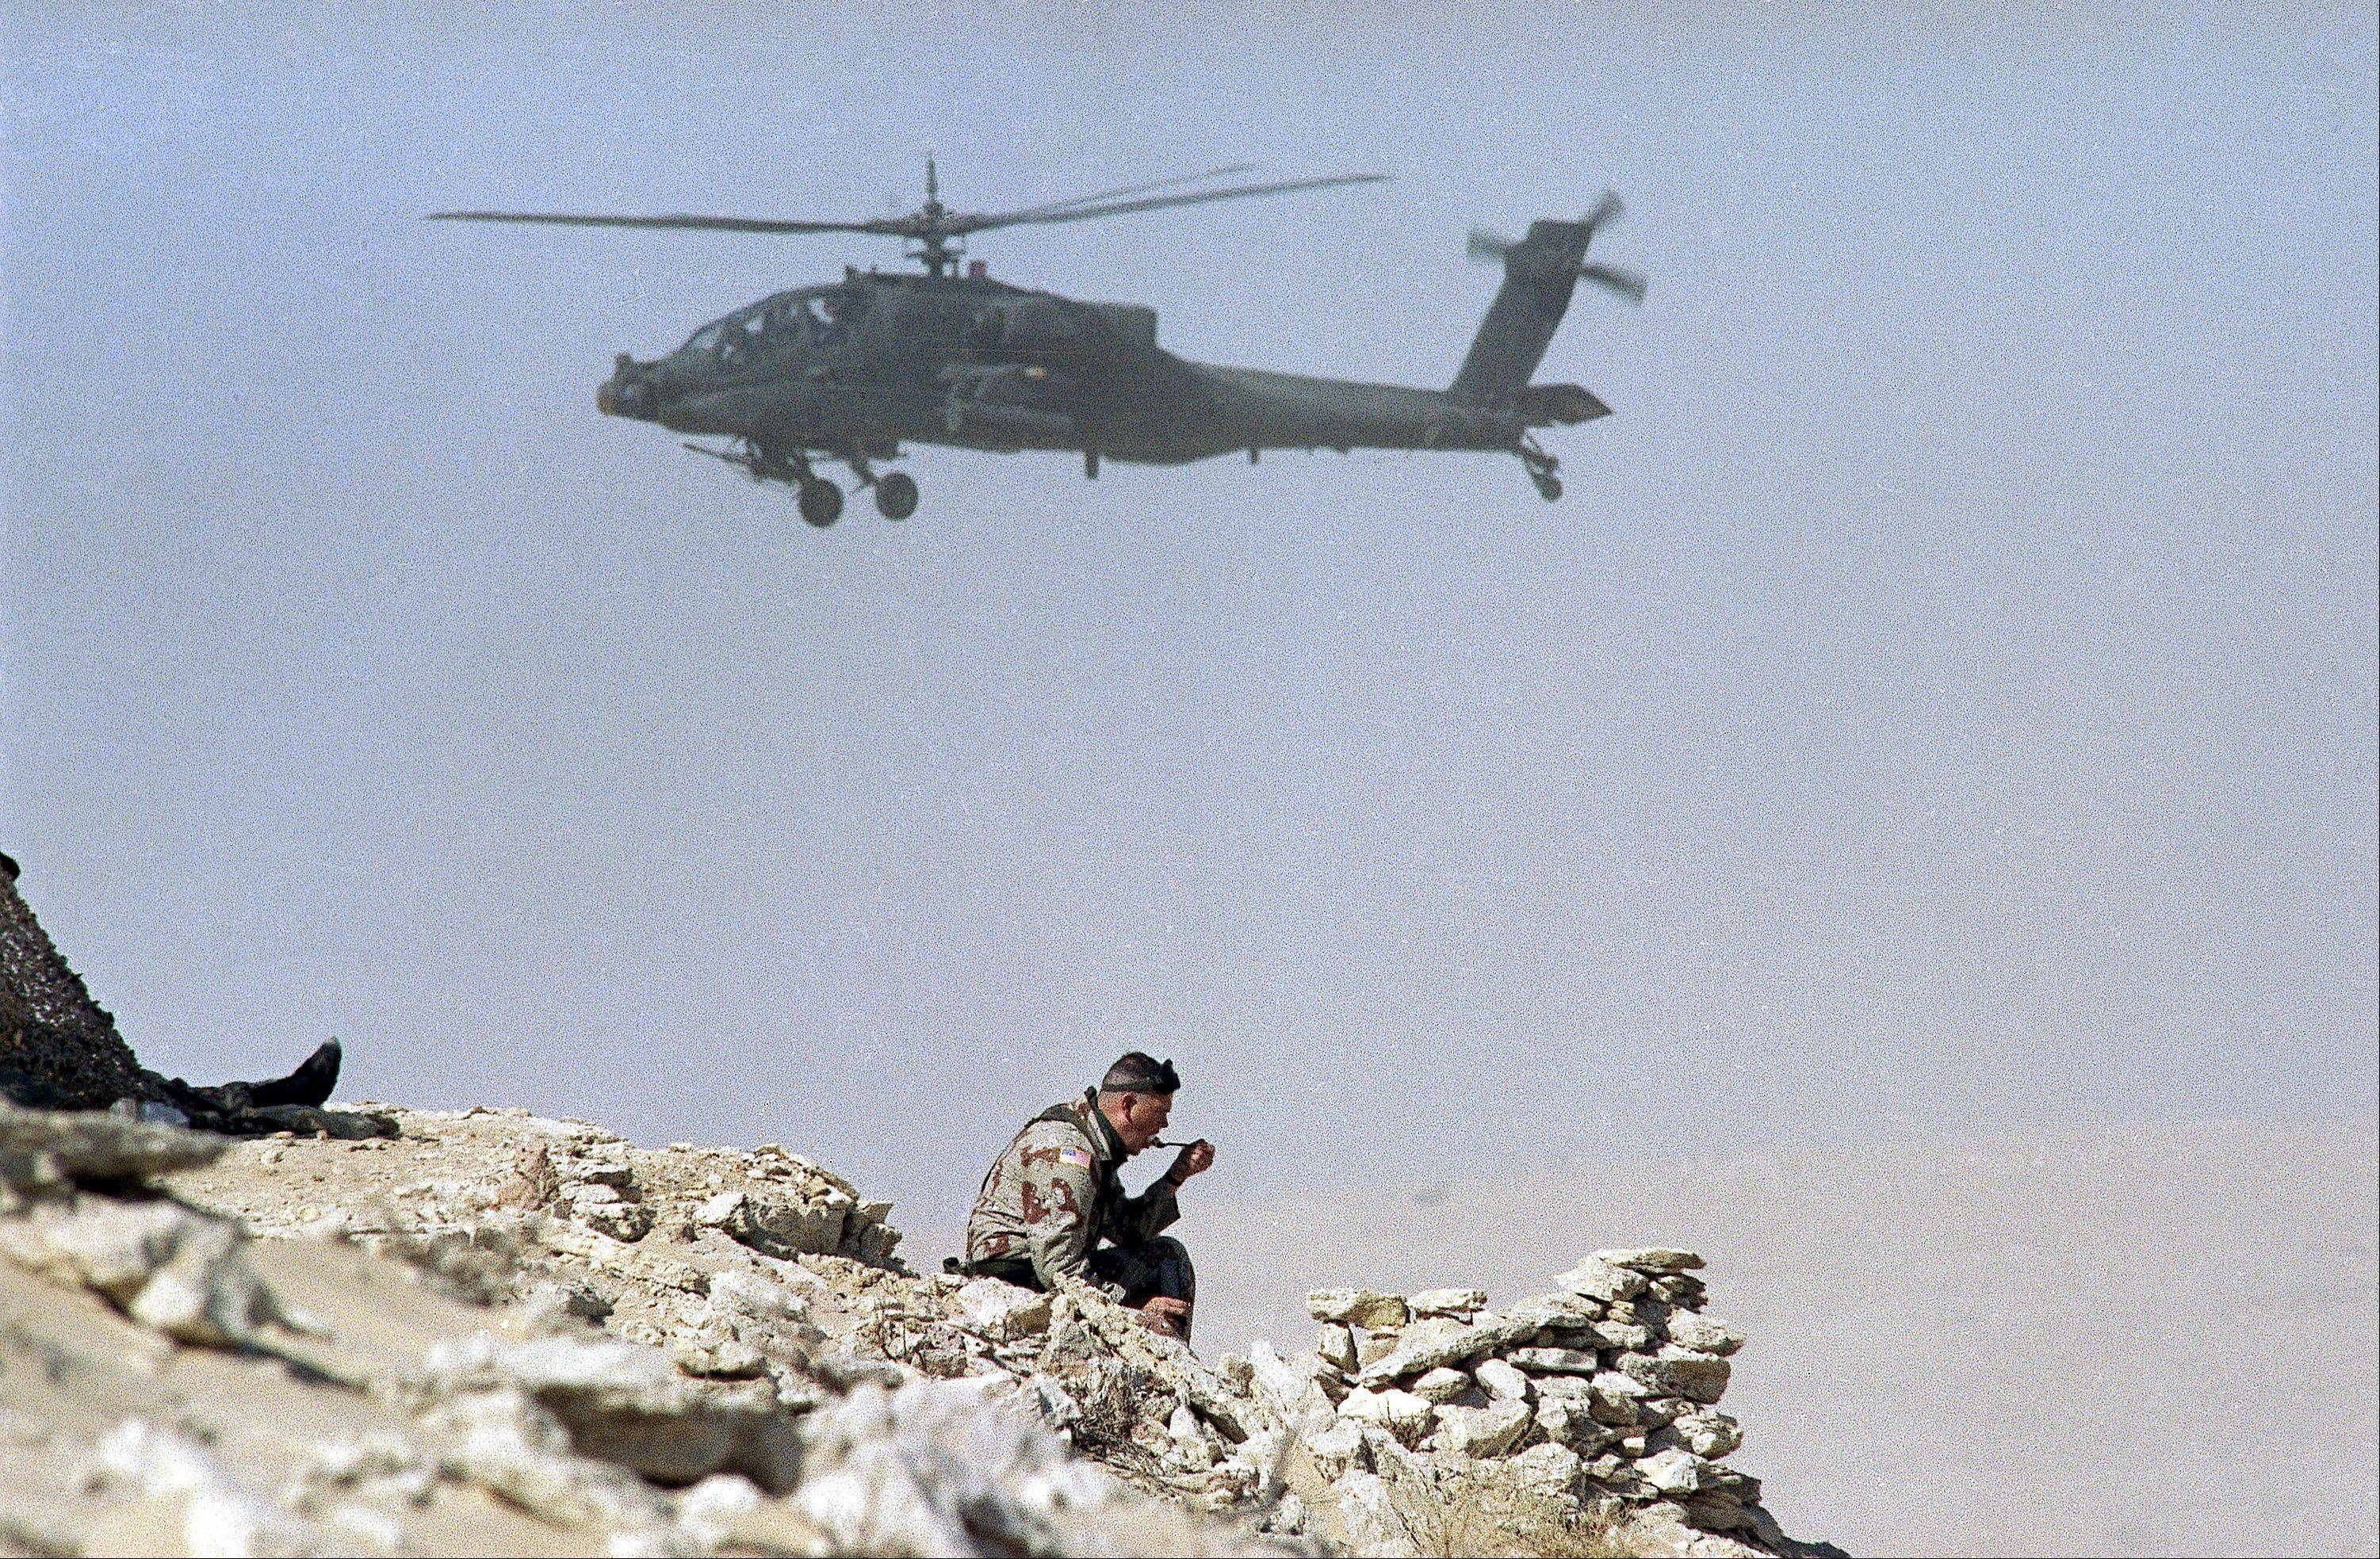 U.S. Army 2nd Lt. Tony Ferguson, of Bahama, NC, eats a field ration in the Saudi desert as an AH-64 Apache attack helicopter hovers nearby, Saturday, Nov. 10, 1990 in Saudi Arabia.